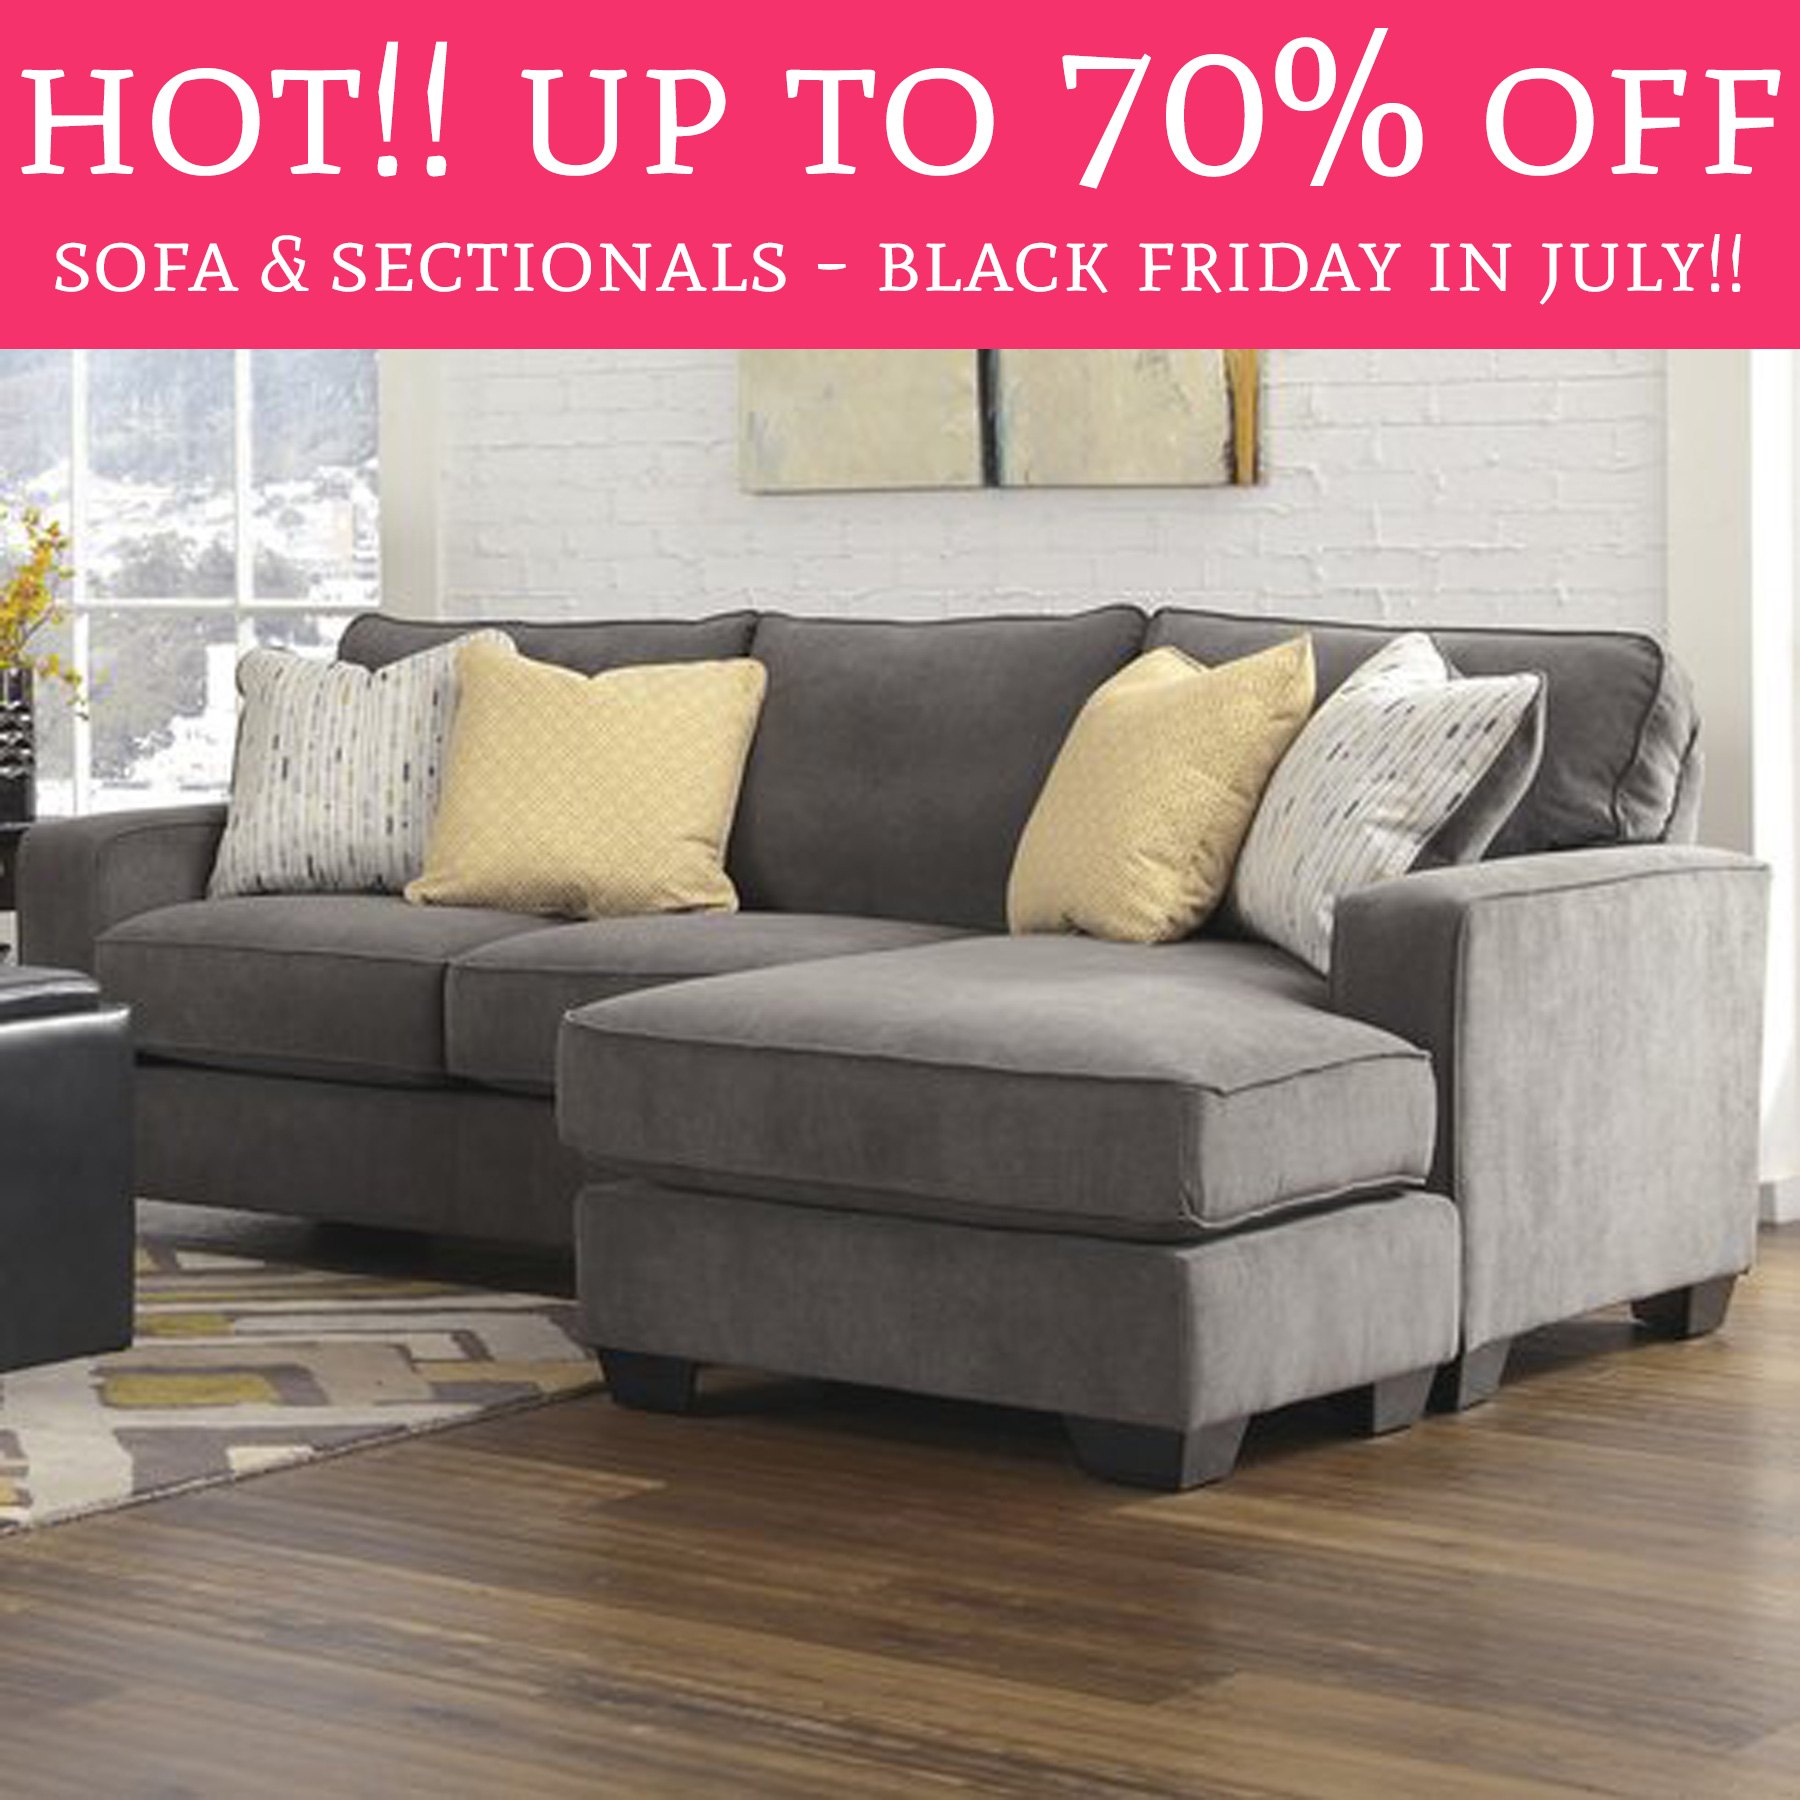 HOT Black Friday In July Up To 70% f Sofa & Sectionals